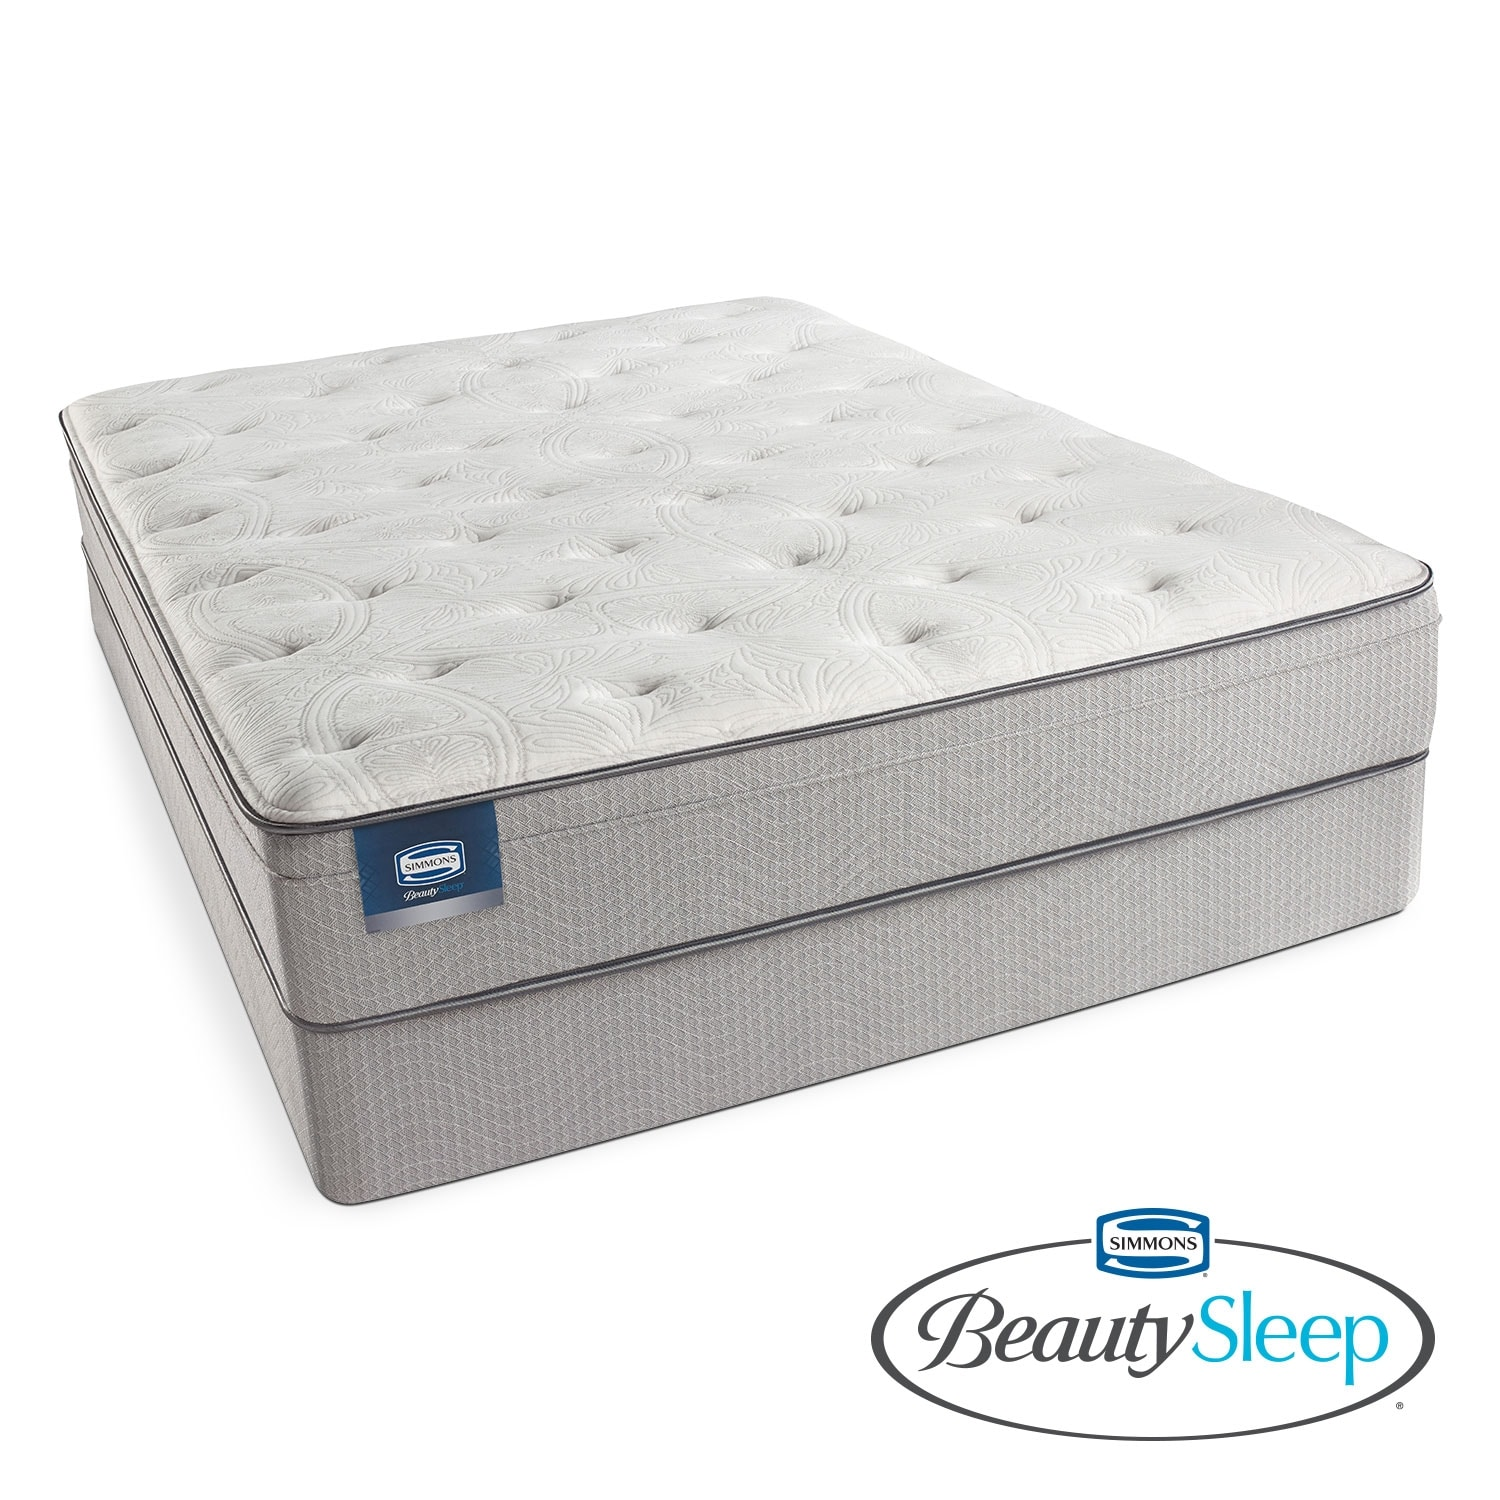 Mattresses and Bedding - Canal St. Plush California King Mattress and Split Foundation Set